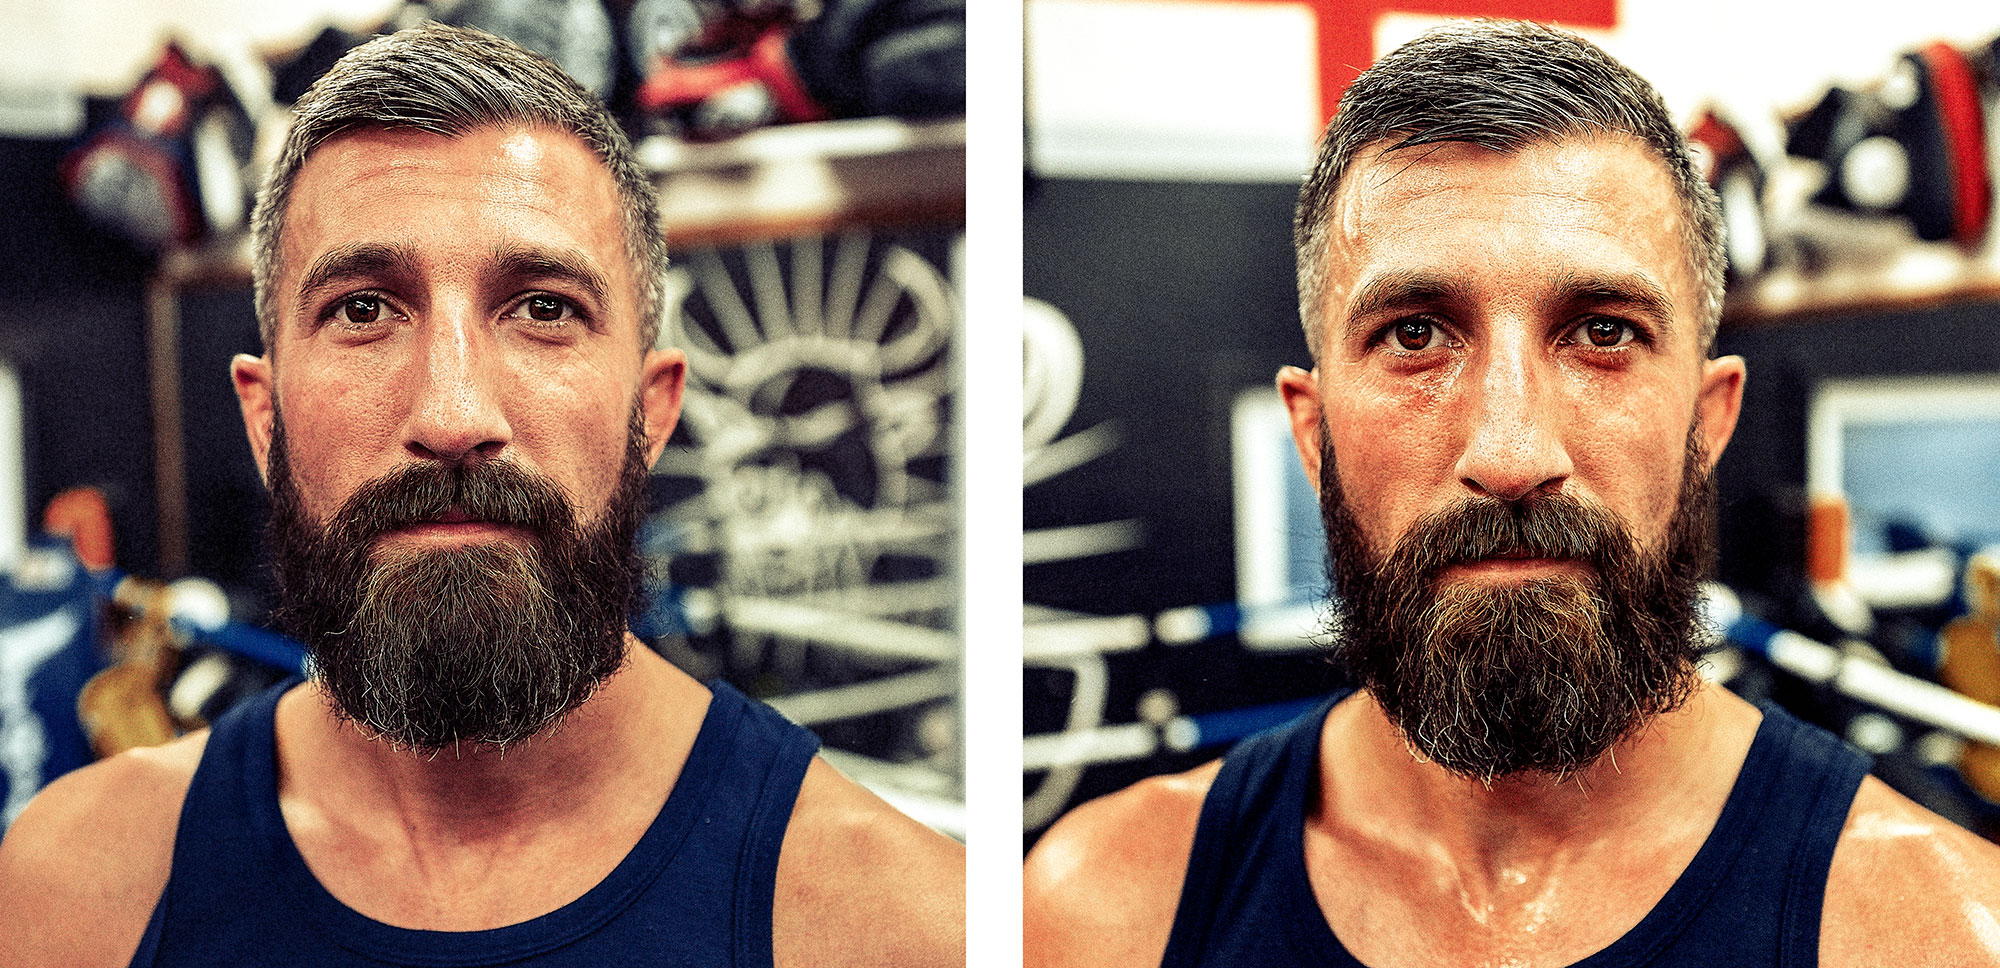 Good Boy Wolf Photographer, Thai kick boxing, before and after a kickboxing session